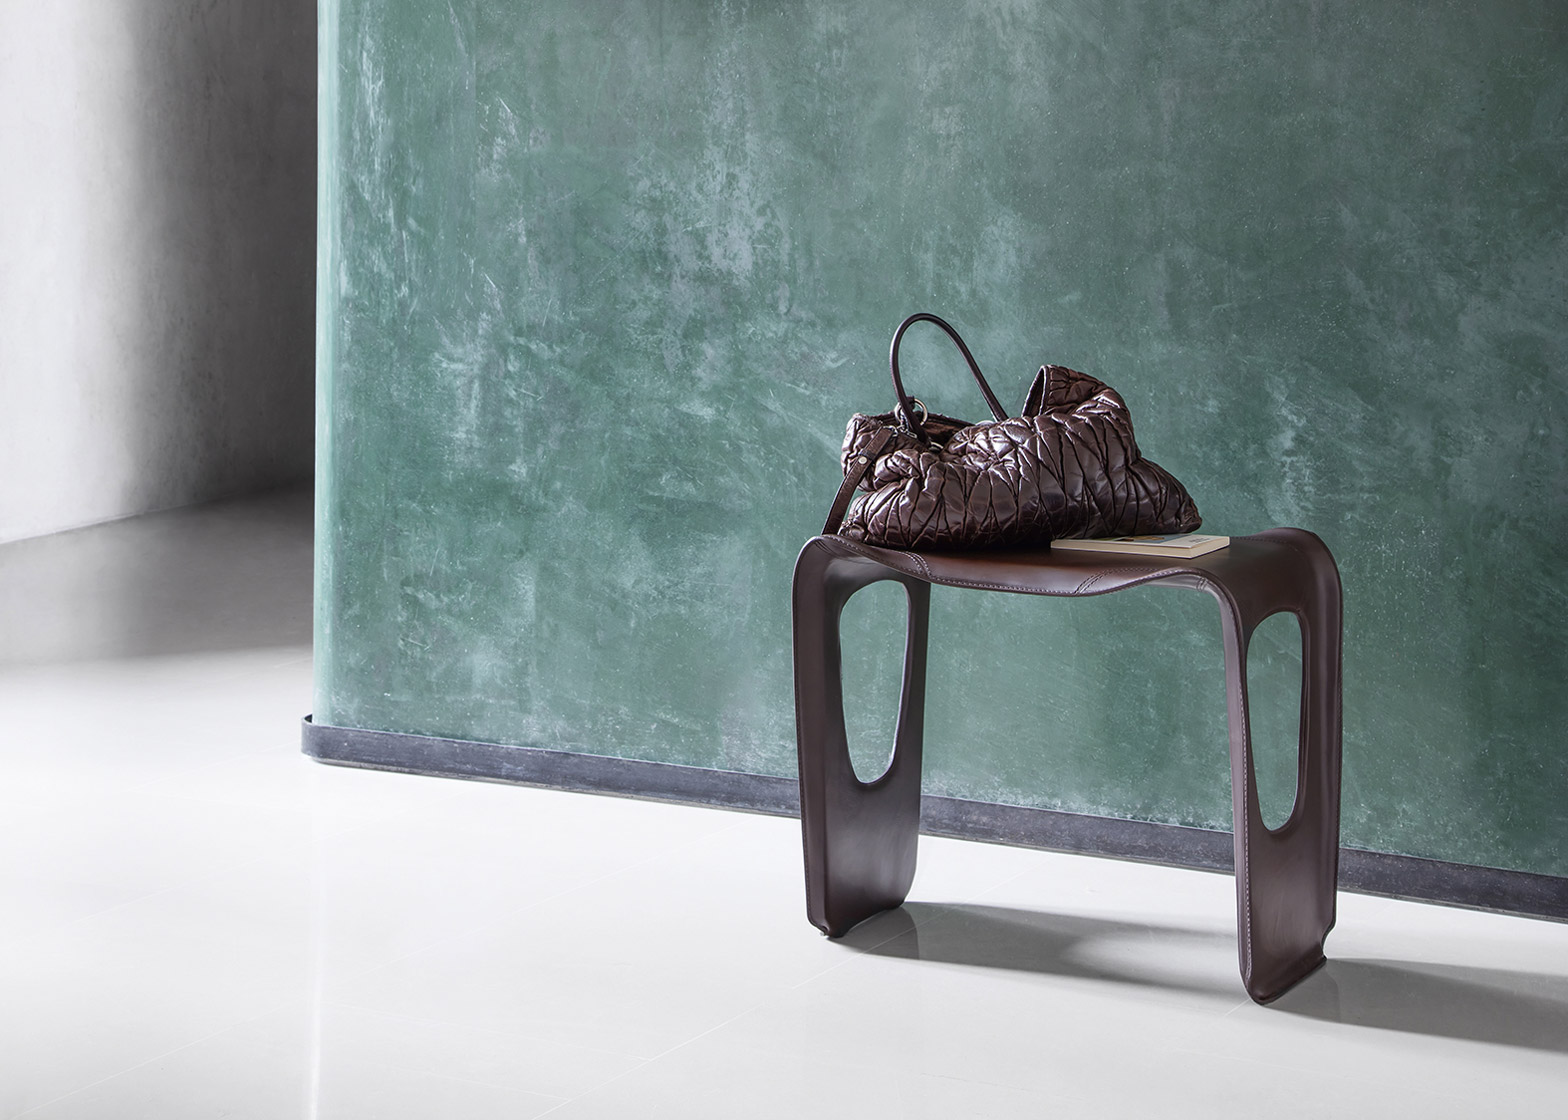 Cassina's Origins of the Future collection